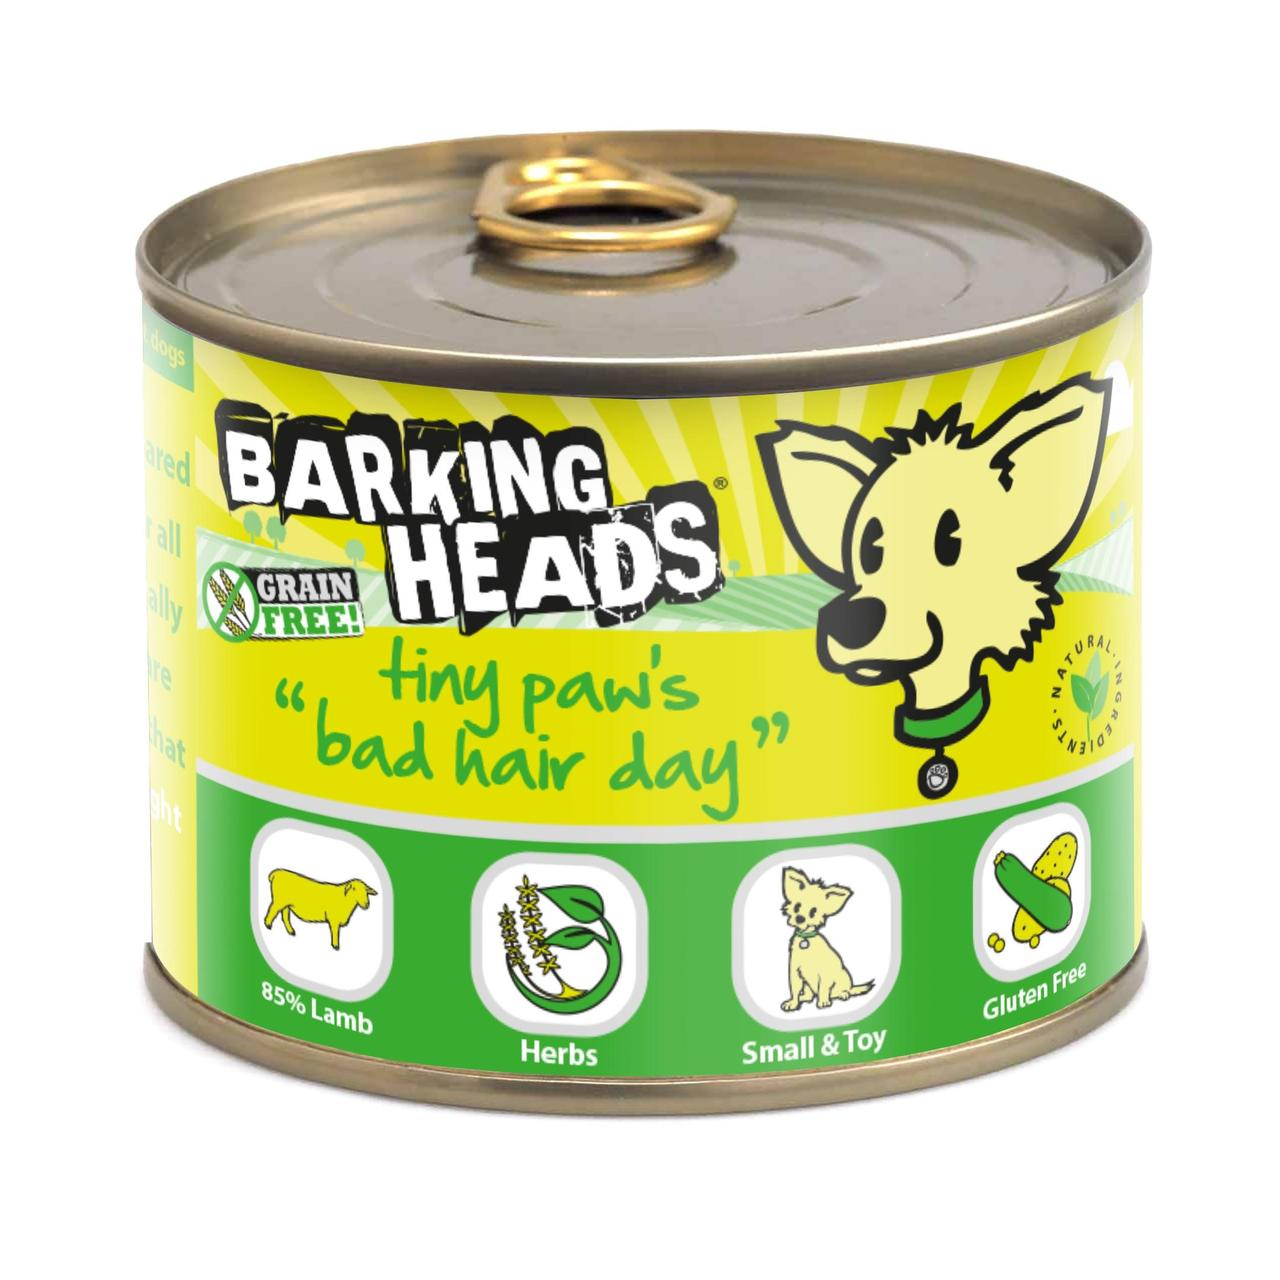 An image of Barking Heads Tiny Paws Bad Hair Day